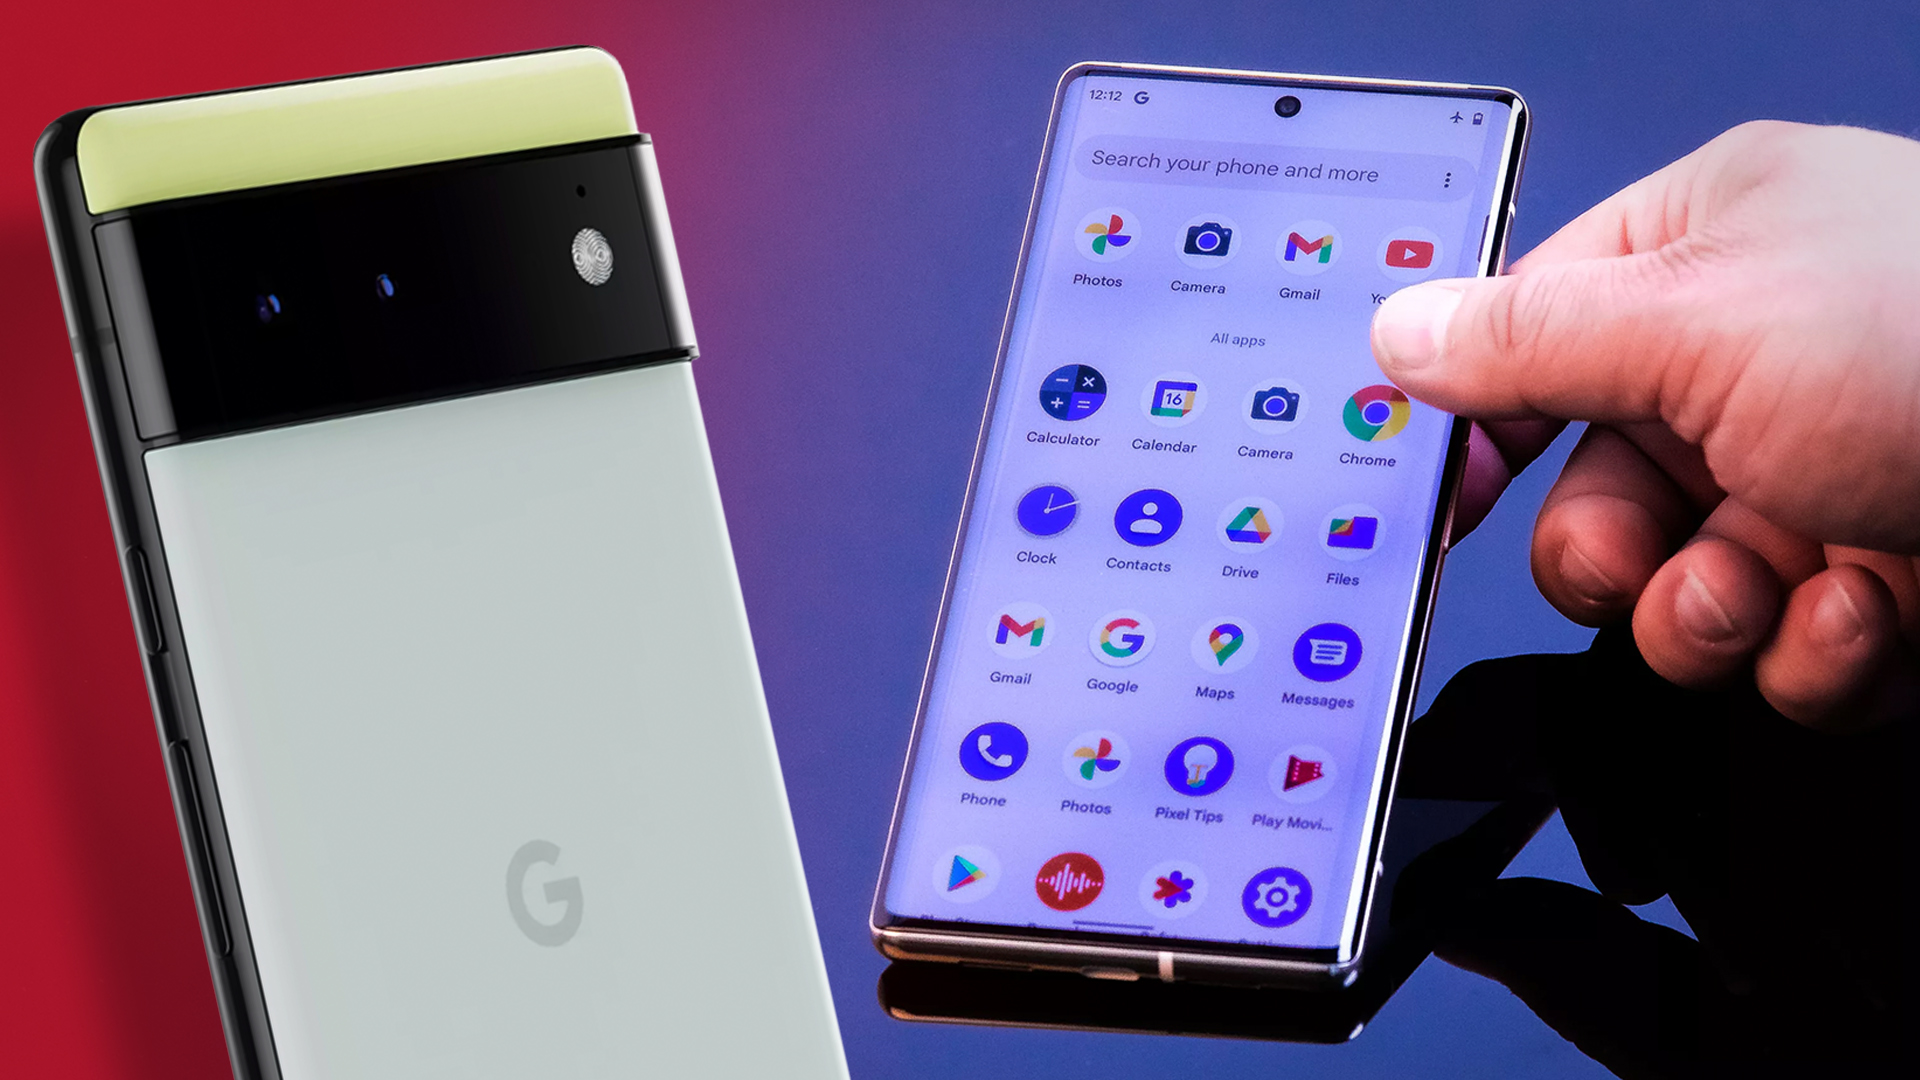 Video: First impressions of the new Pixel 6 and 6 Pro